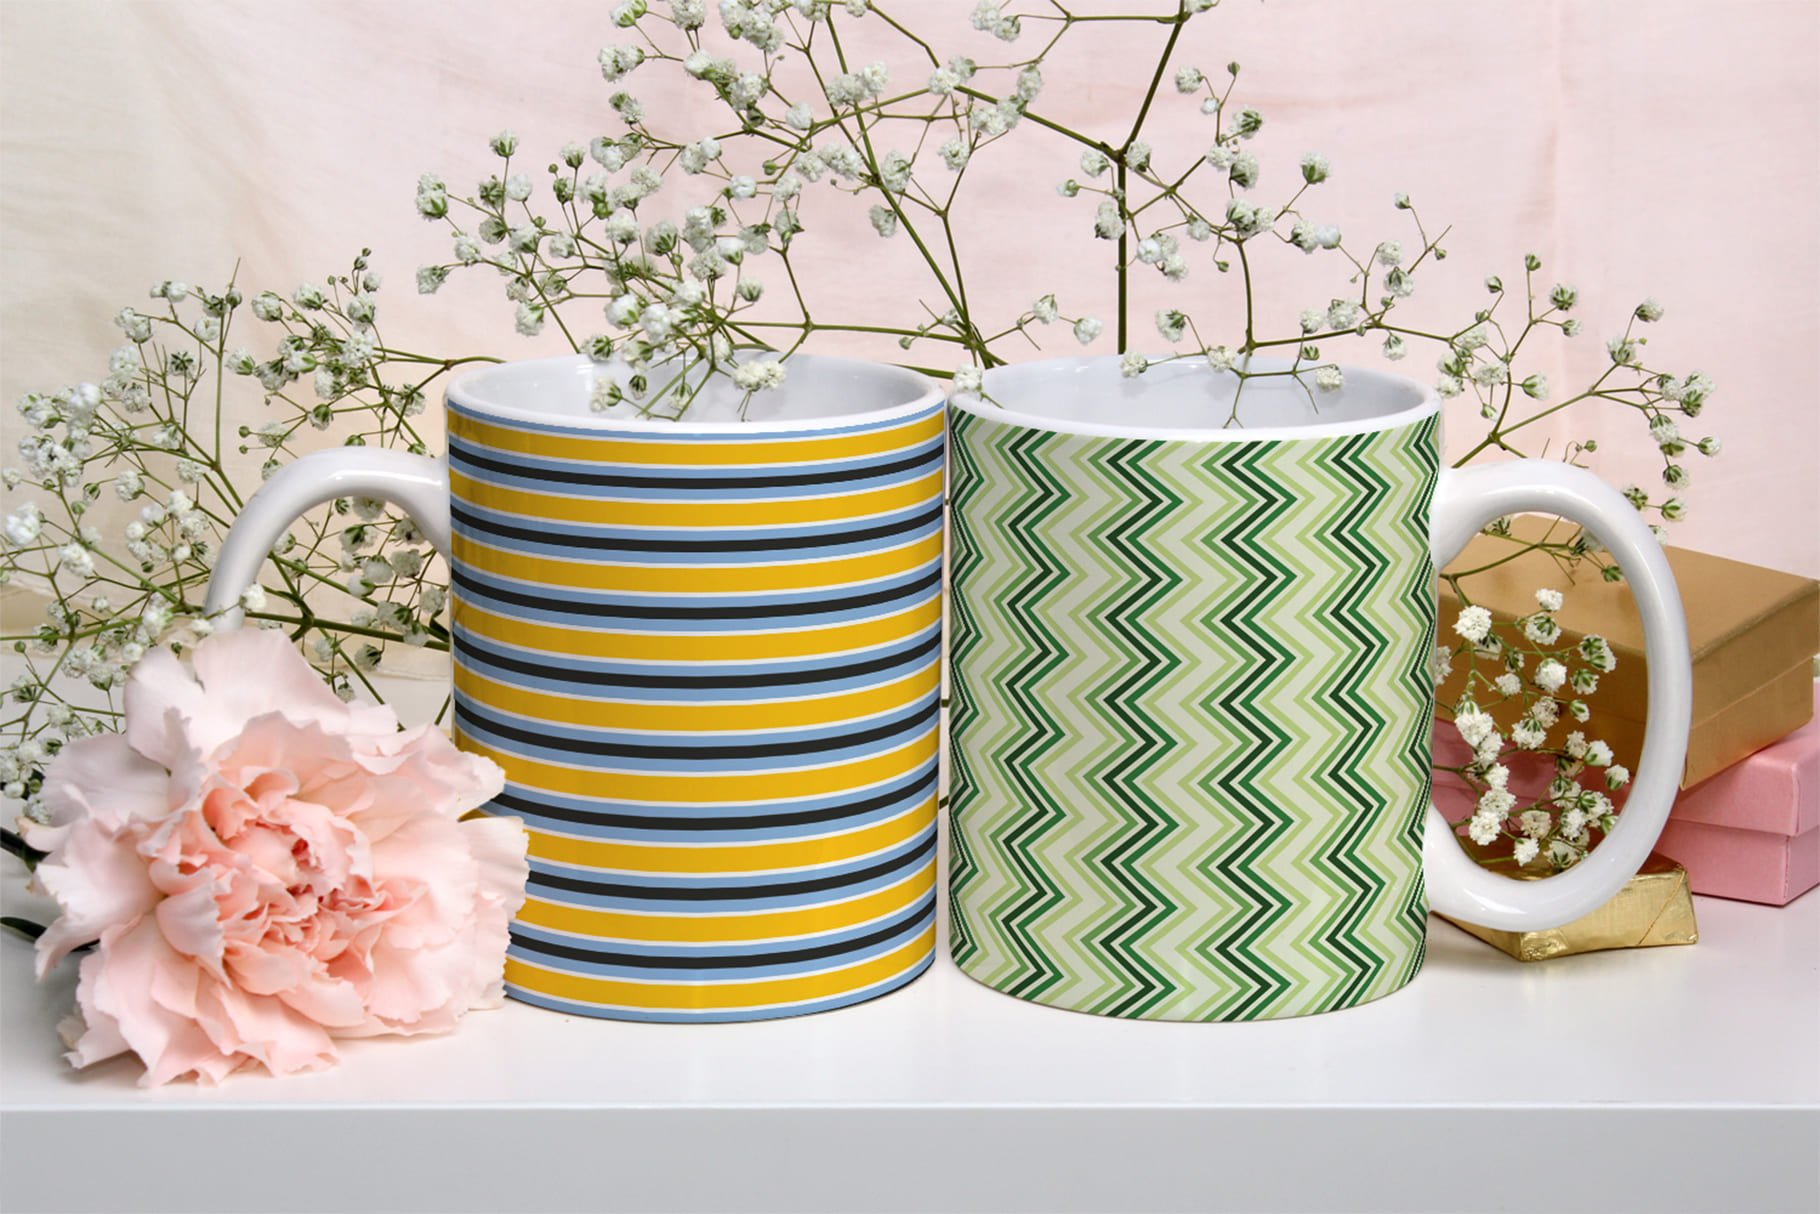 Two cups - one with lines, the other with a herringbone print.